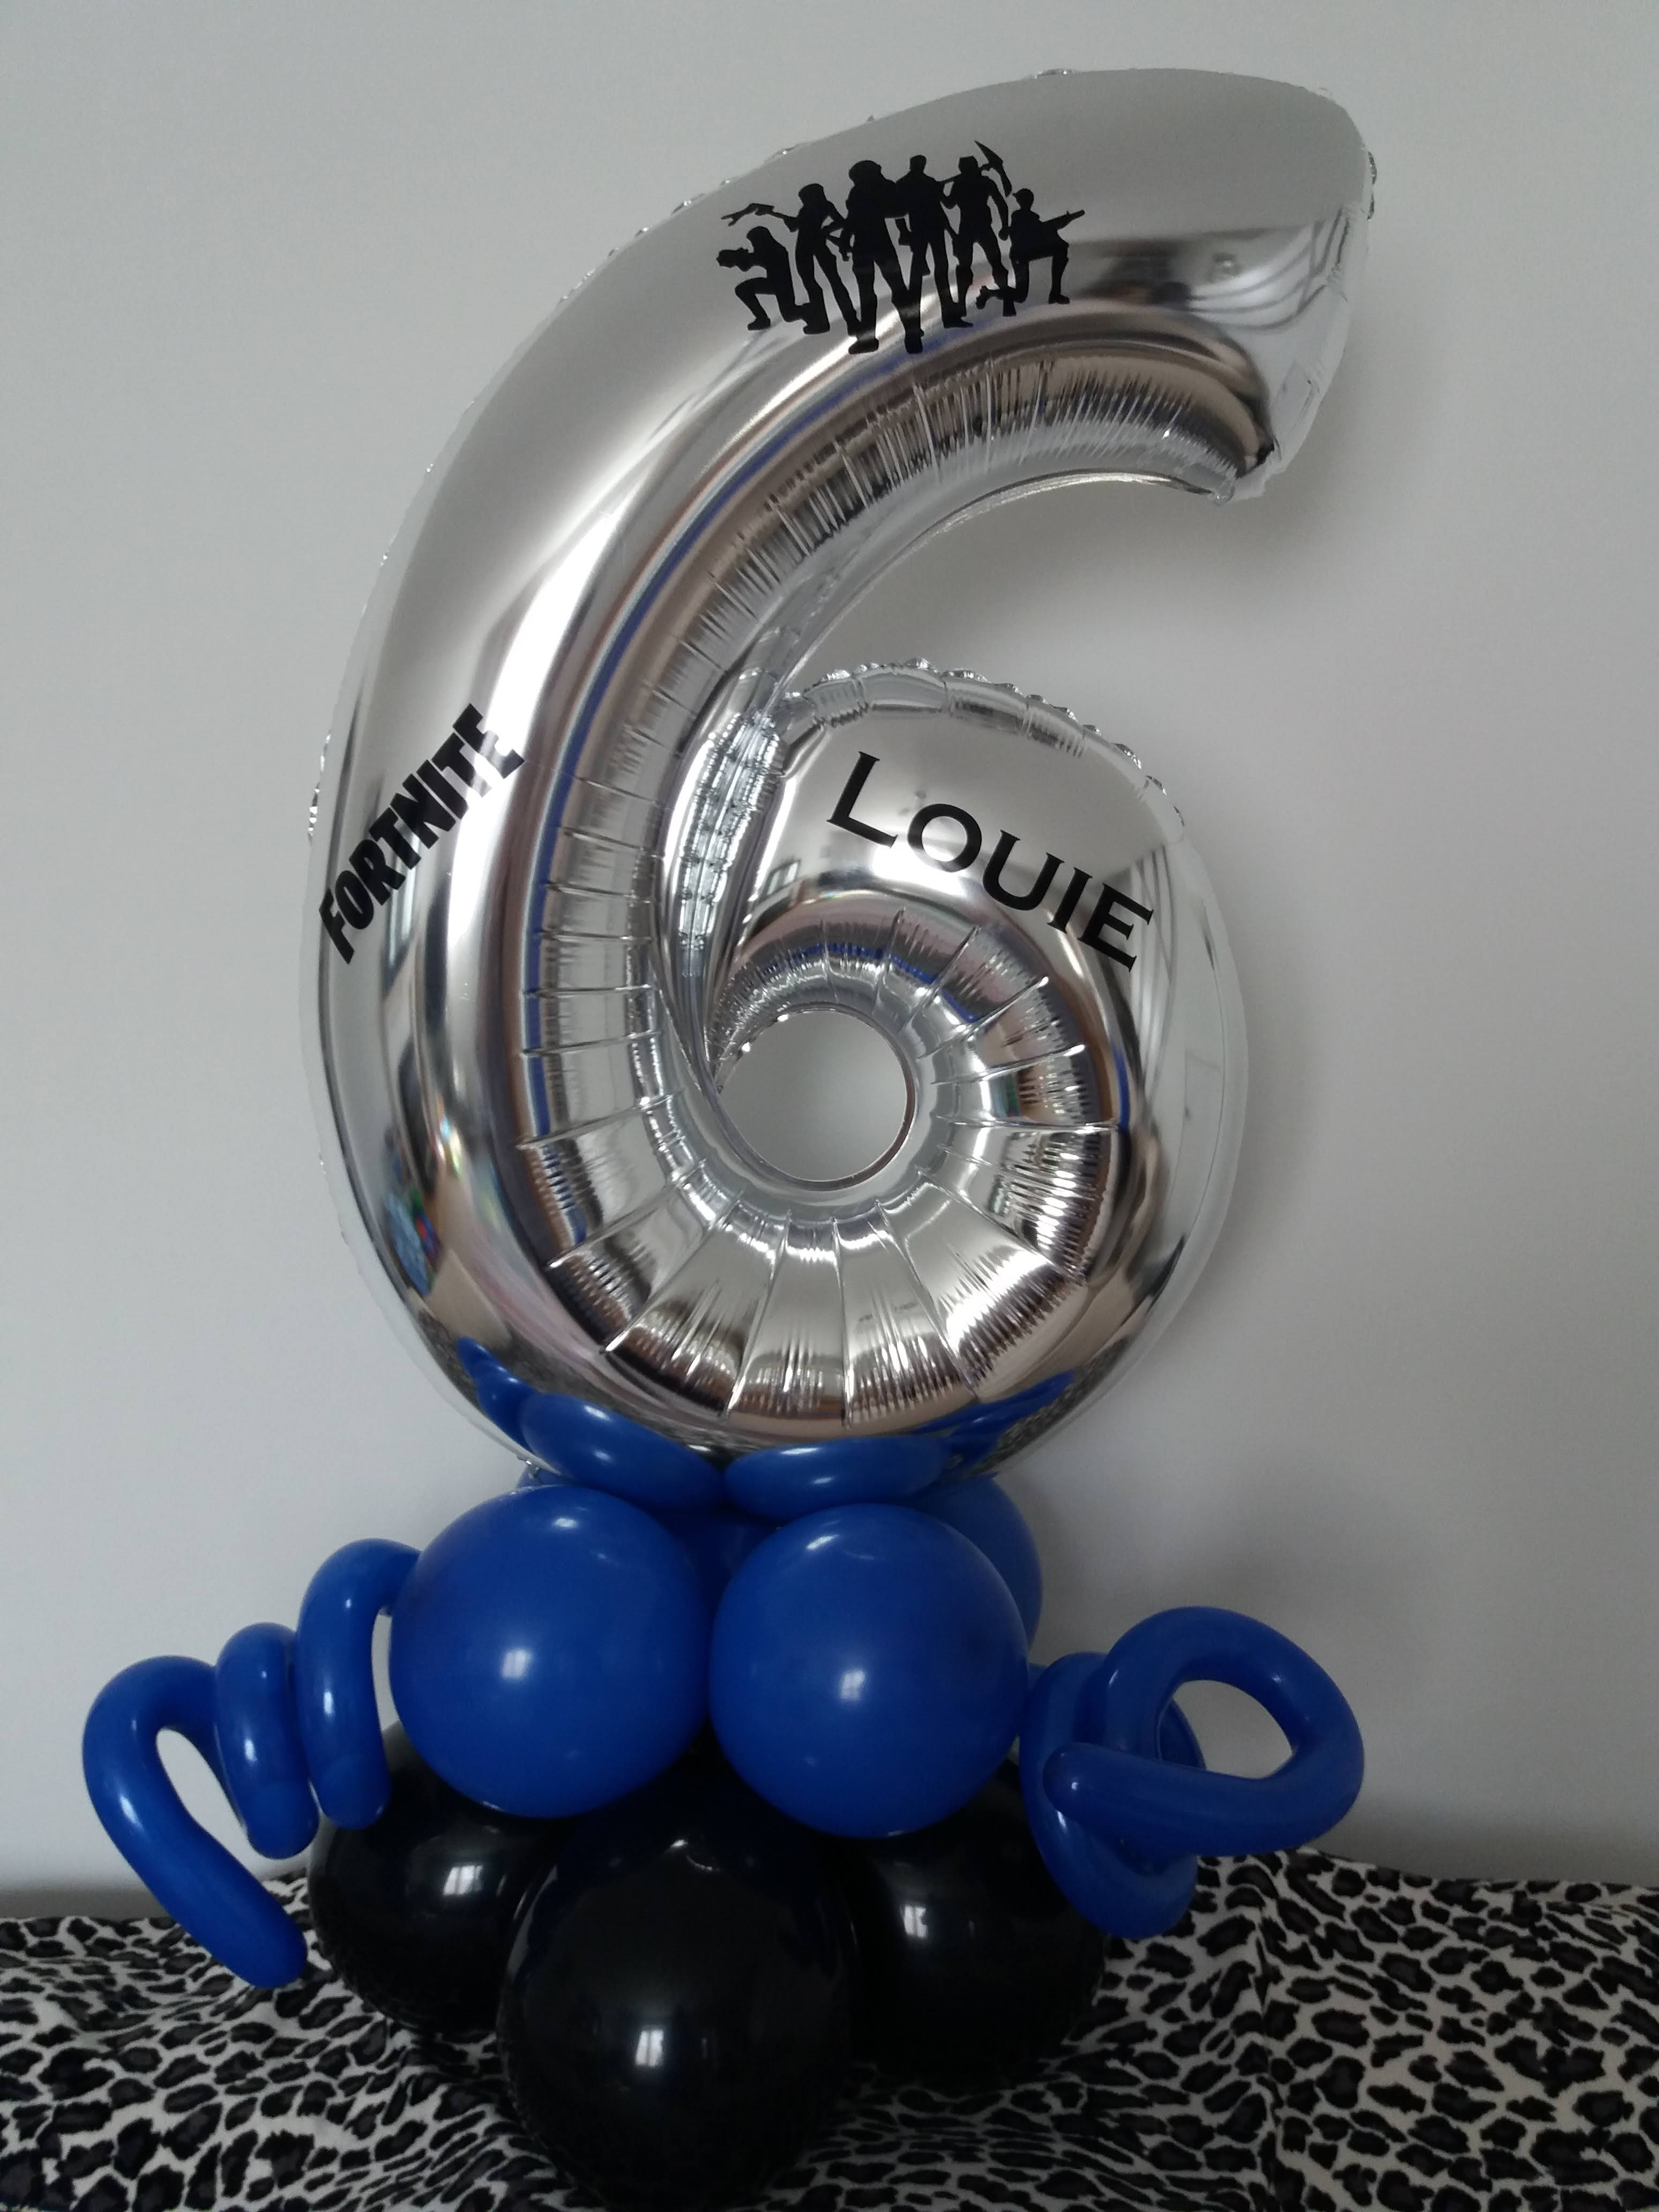 simple themed number with name £16